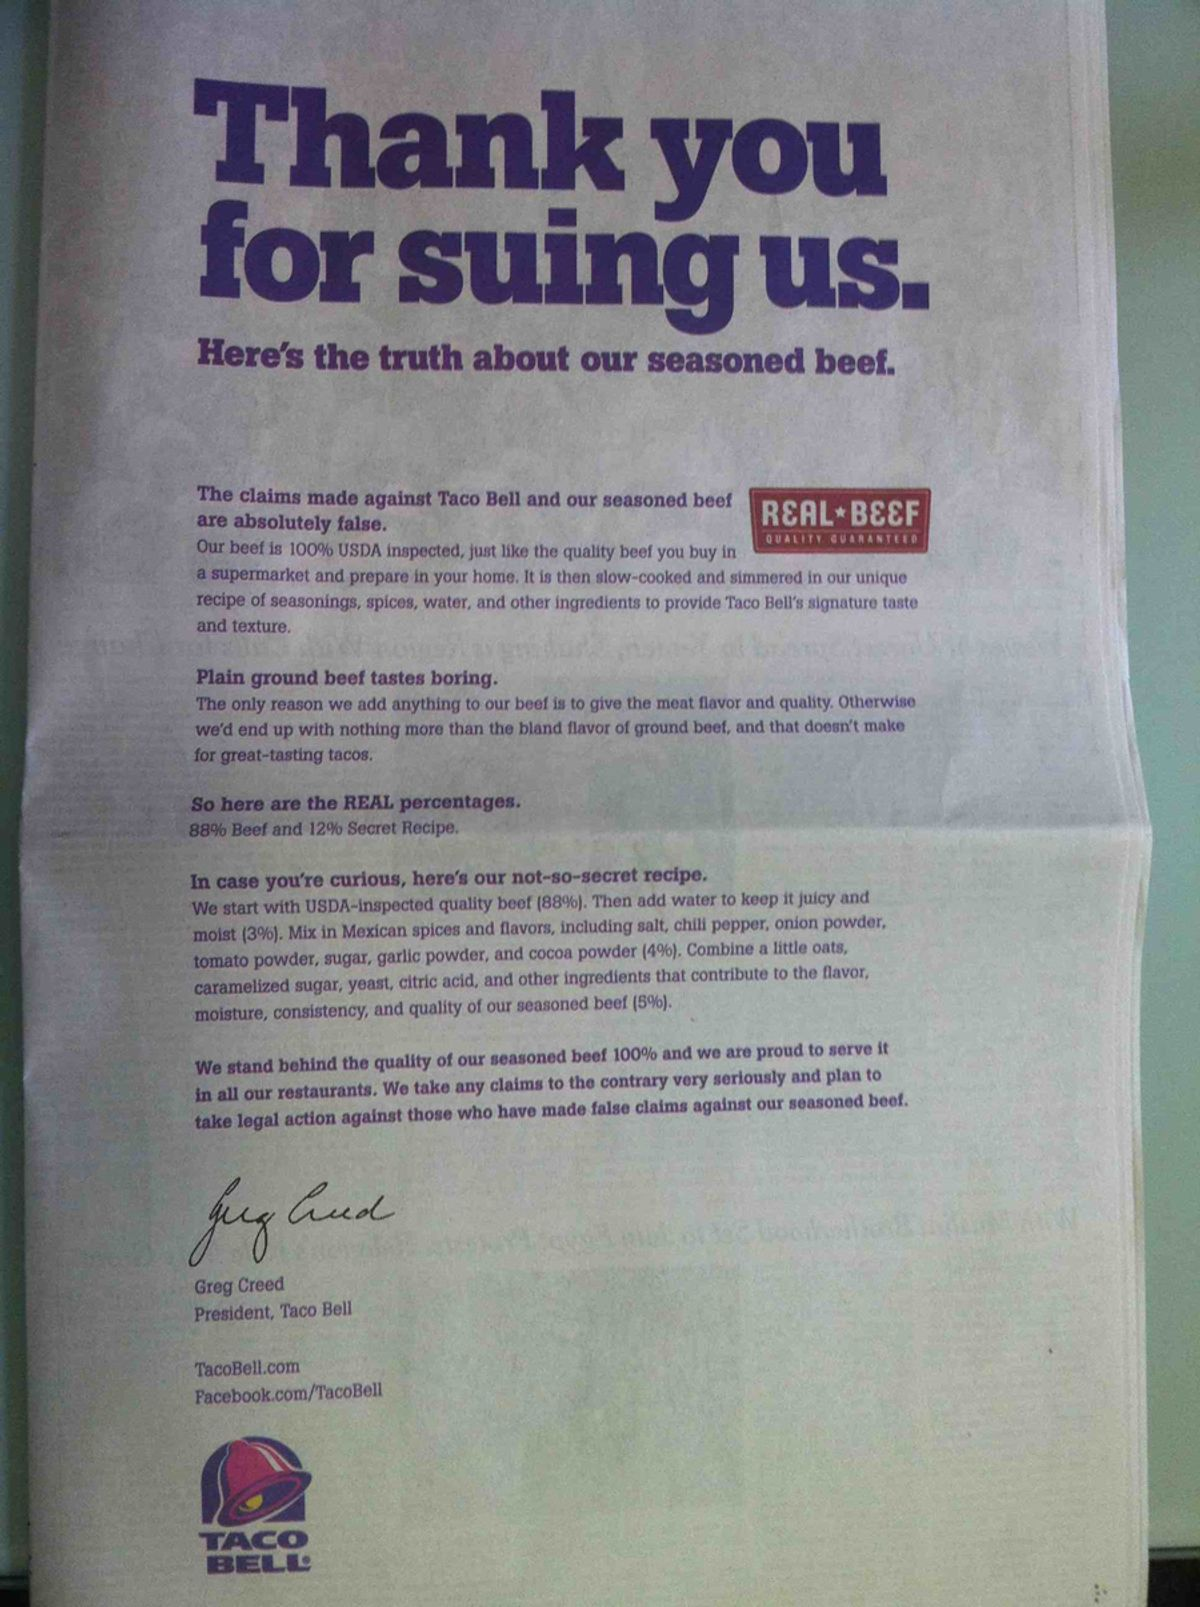 Full-page Taco Bell ad in Friday's edition of The New York  Times.